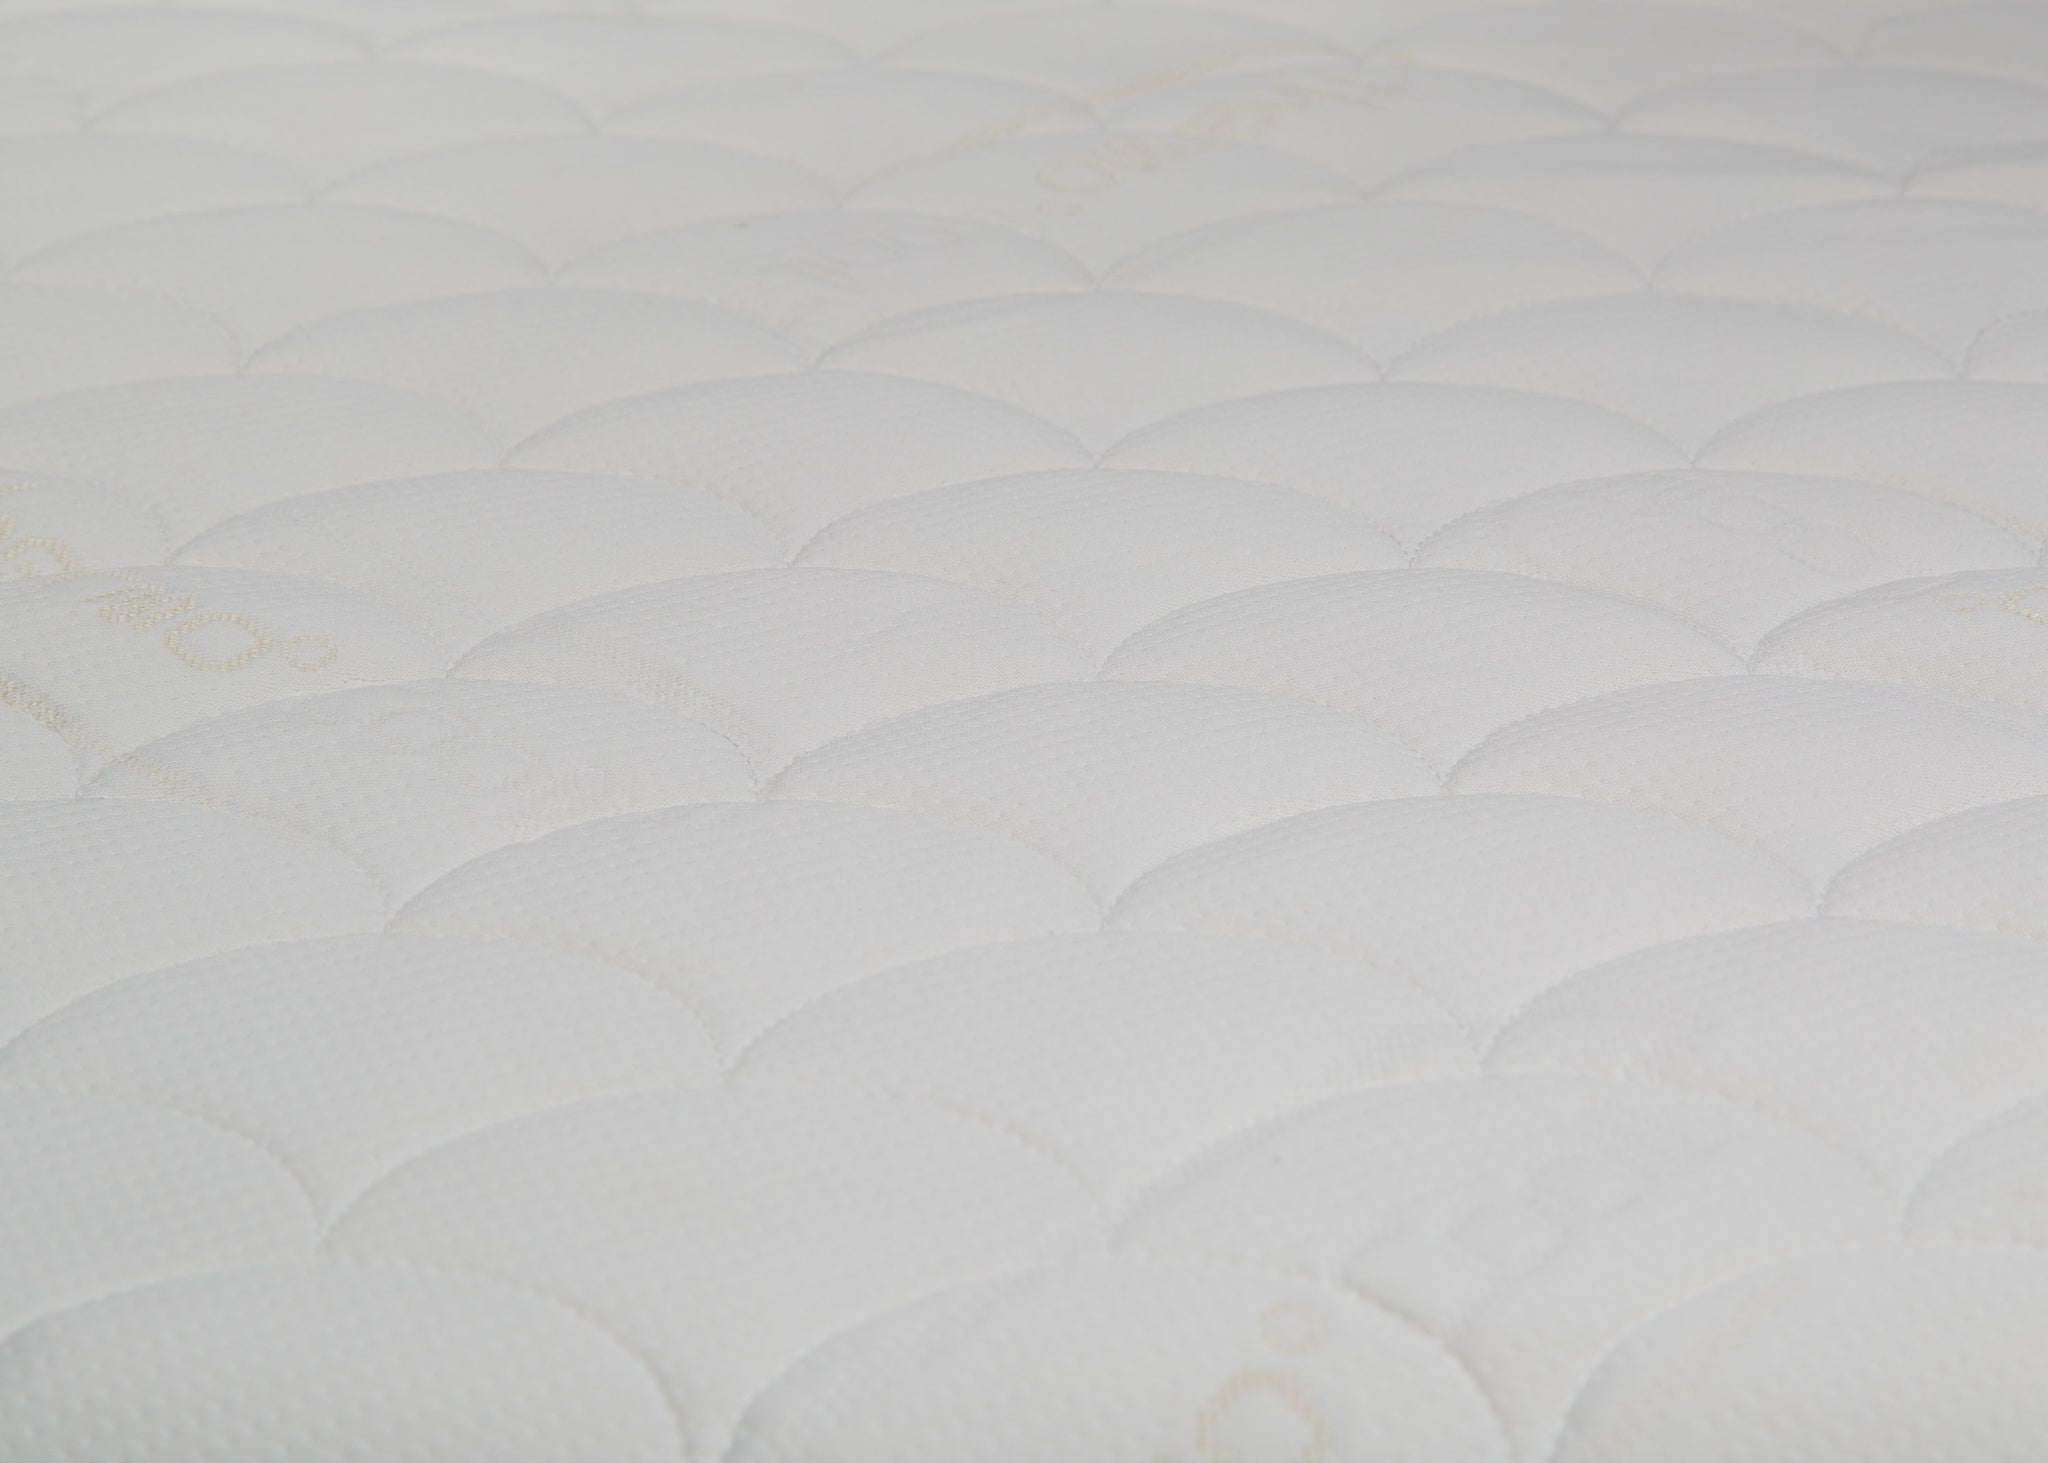 Beautyrest KIDS Fitted Crib Mattress Protector Detail View a4a No Color (NO)